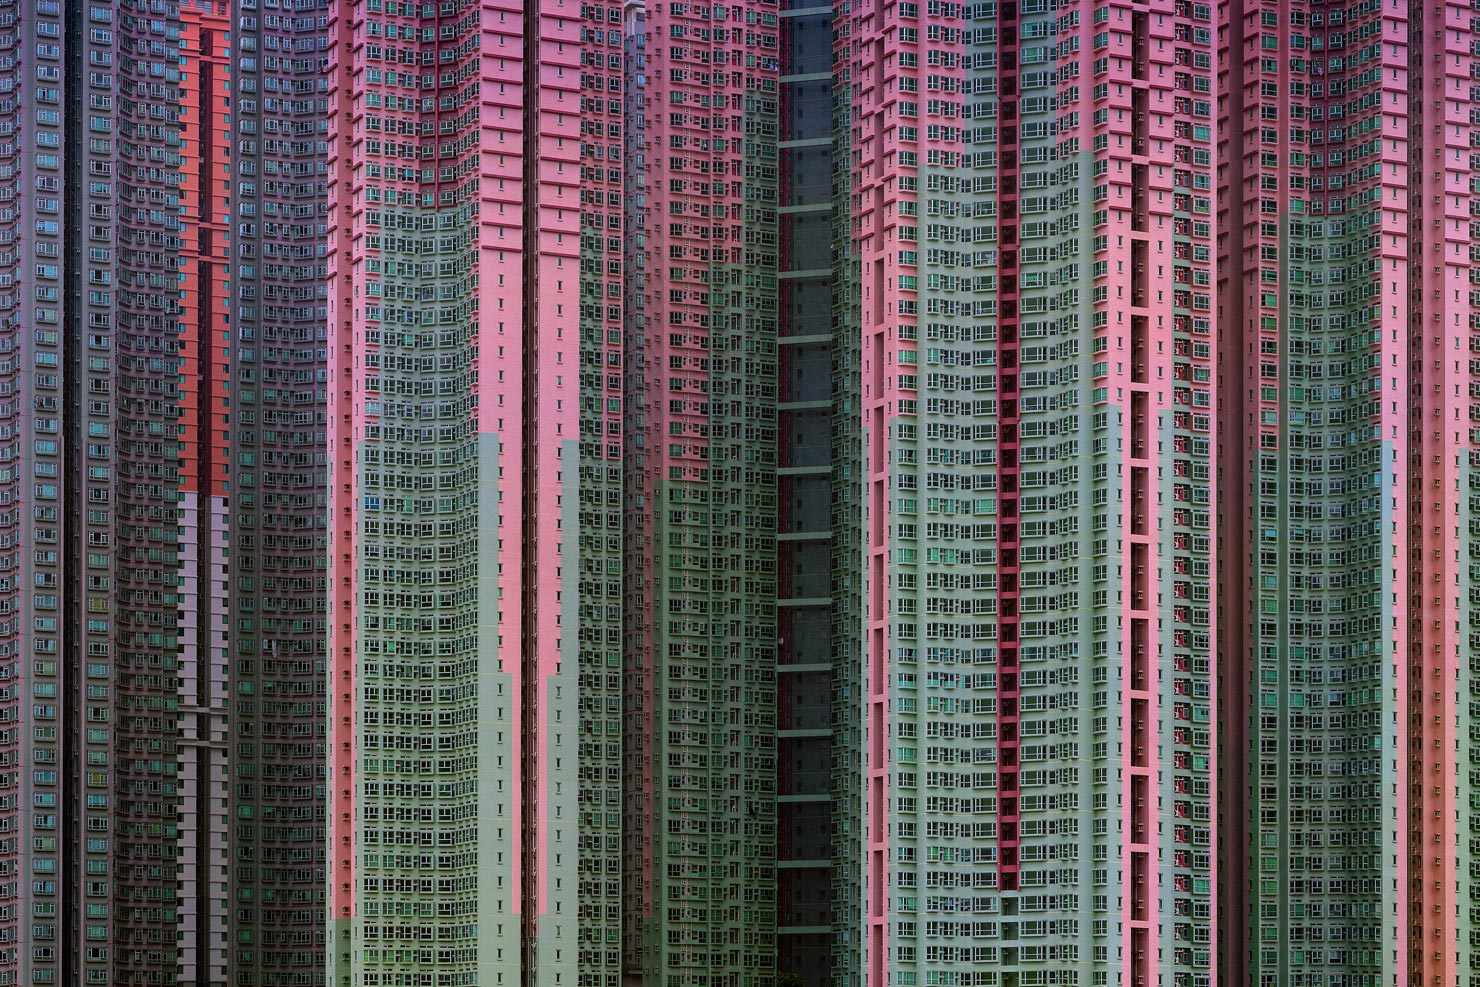 Architecture of Density.